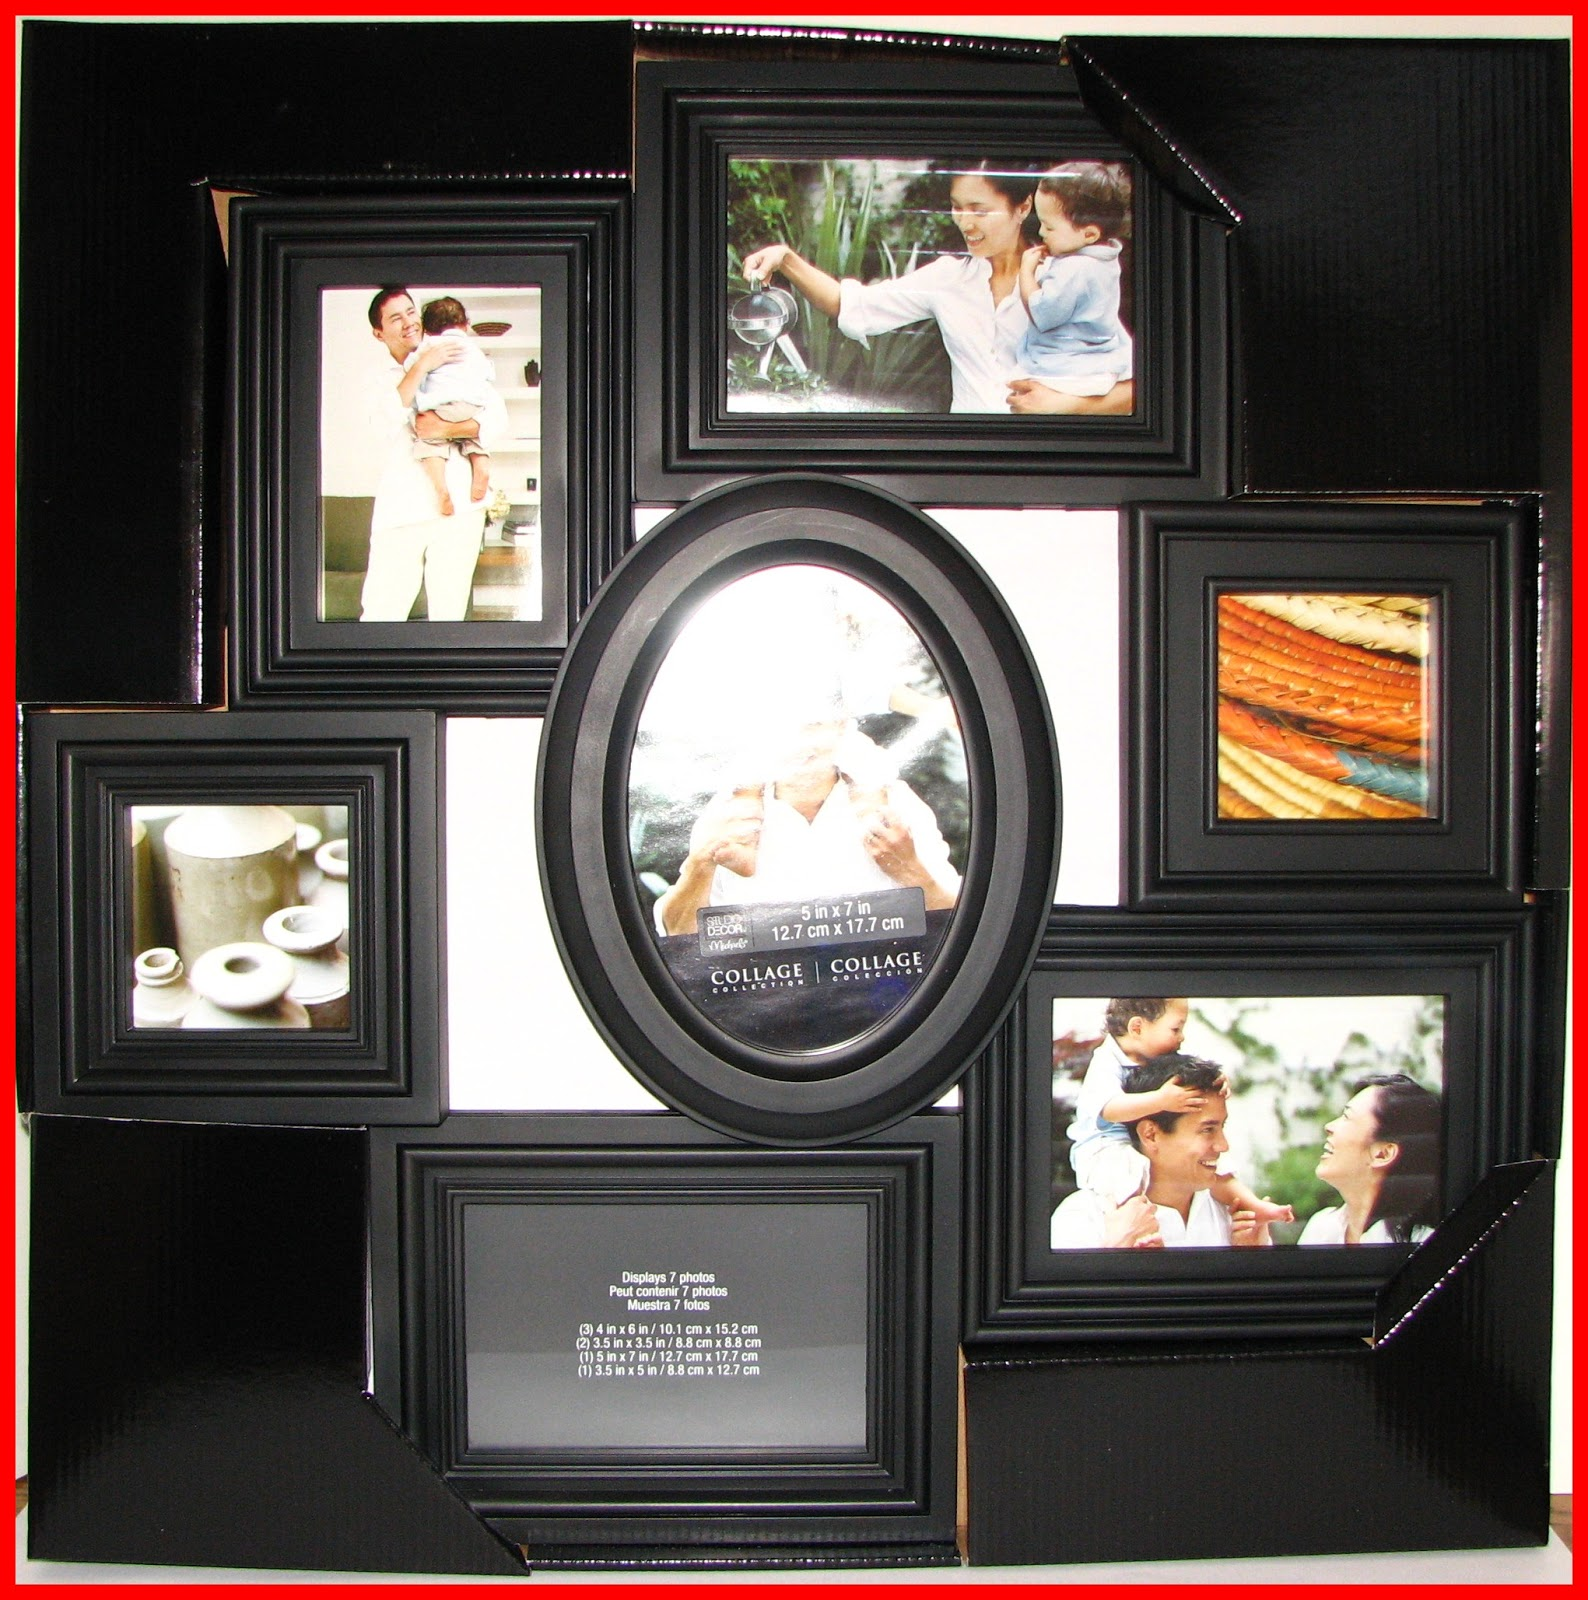 Around the block with scrapalette disney in a frame i used ccr to hide all the interior cuts of the images and applied the vinyl to the outside of the frames i inserted colored card stock to each frame jeuxipadfo Choice Image